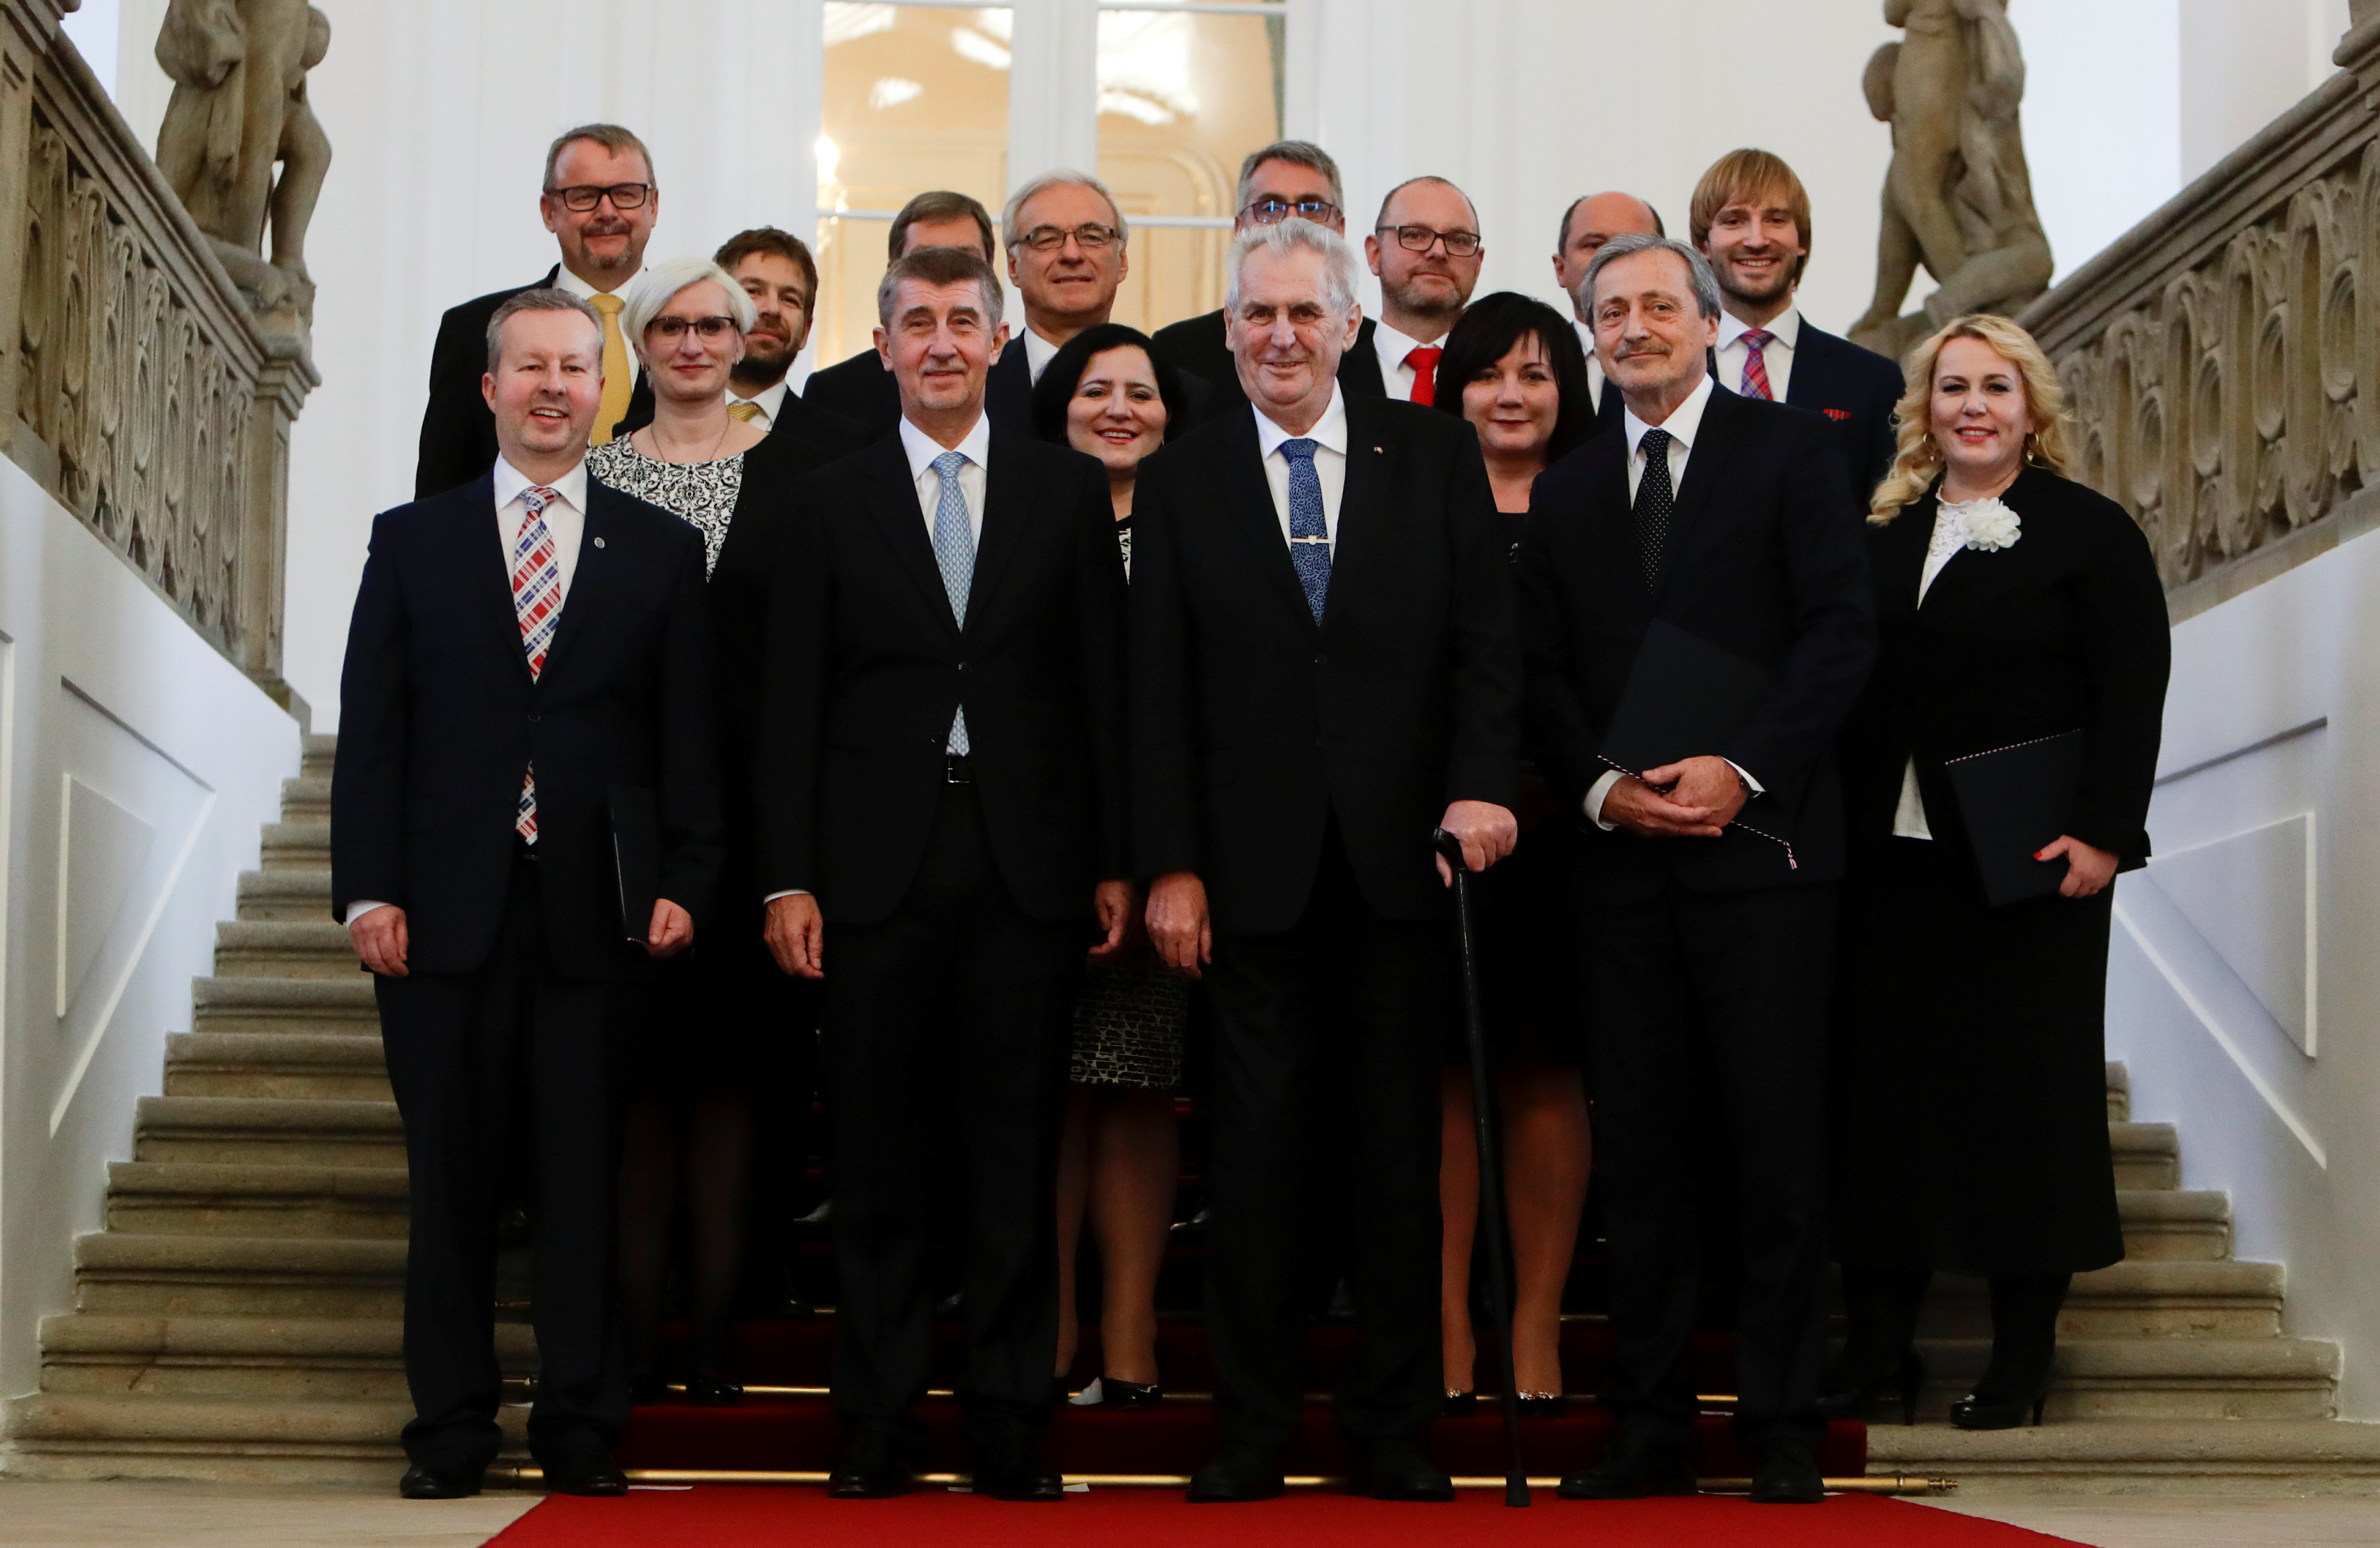 Prime Minister Andrej Babis and Czech President Milos Zeman pose for a group photograph with newly appointed members of the Czech government during the cabinet's inauguration at Prague Castle in Prague, Czech Republic December 13, 2017. REUTERS/David W Cerny